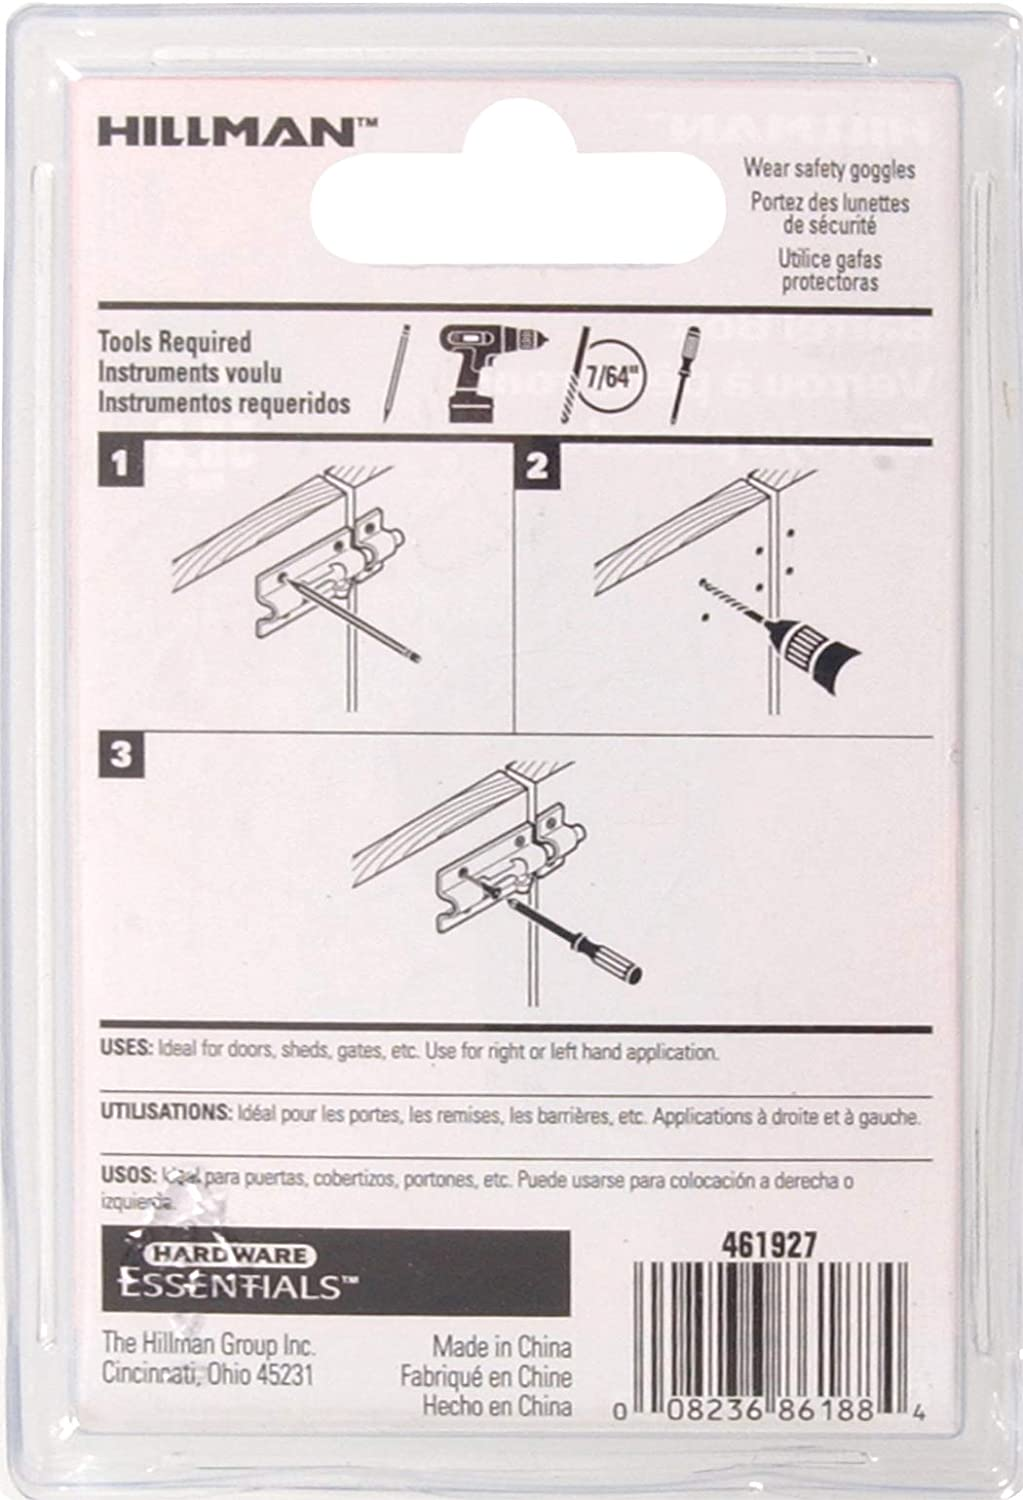 Amazon.com: Hillman Hardware Essentials 851020 Barrel Bolt Zinc and Yellow Dichromate 2